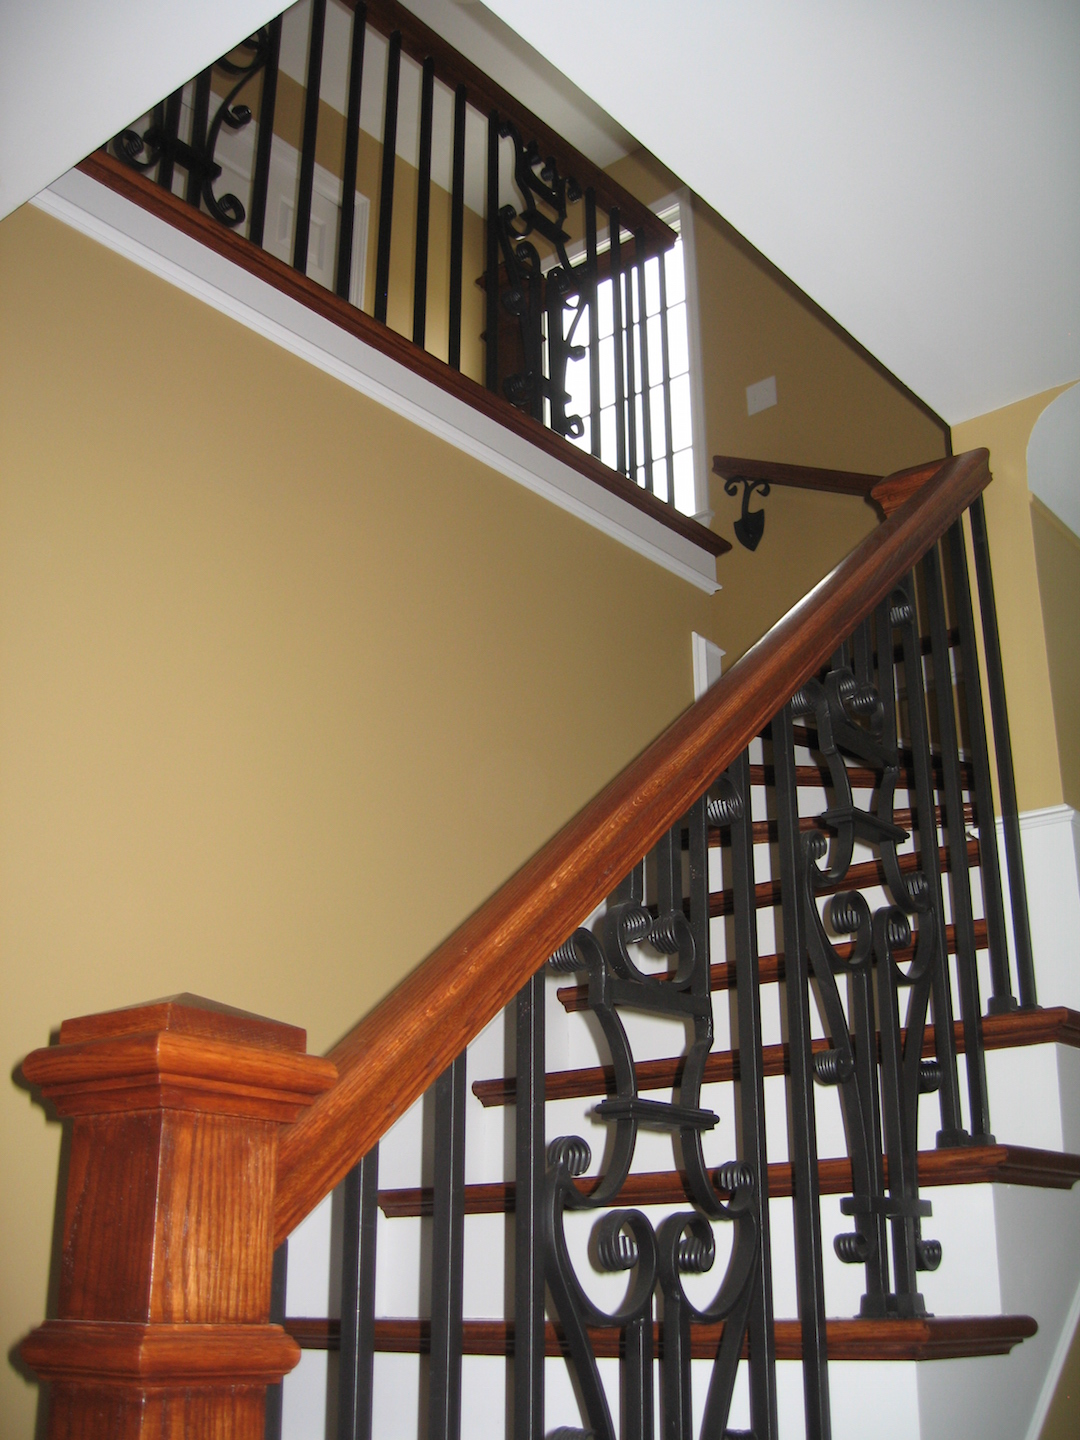 13. AFTER - Stairs - a